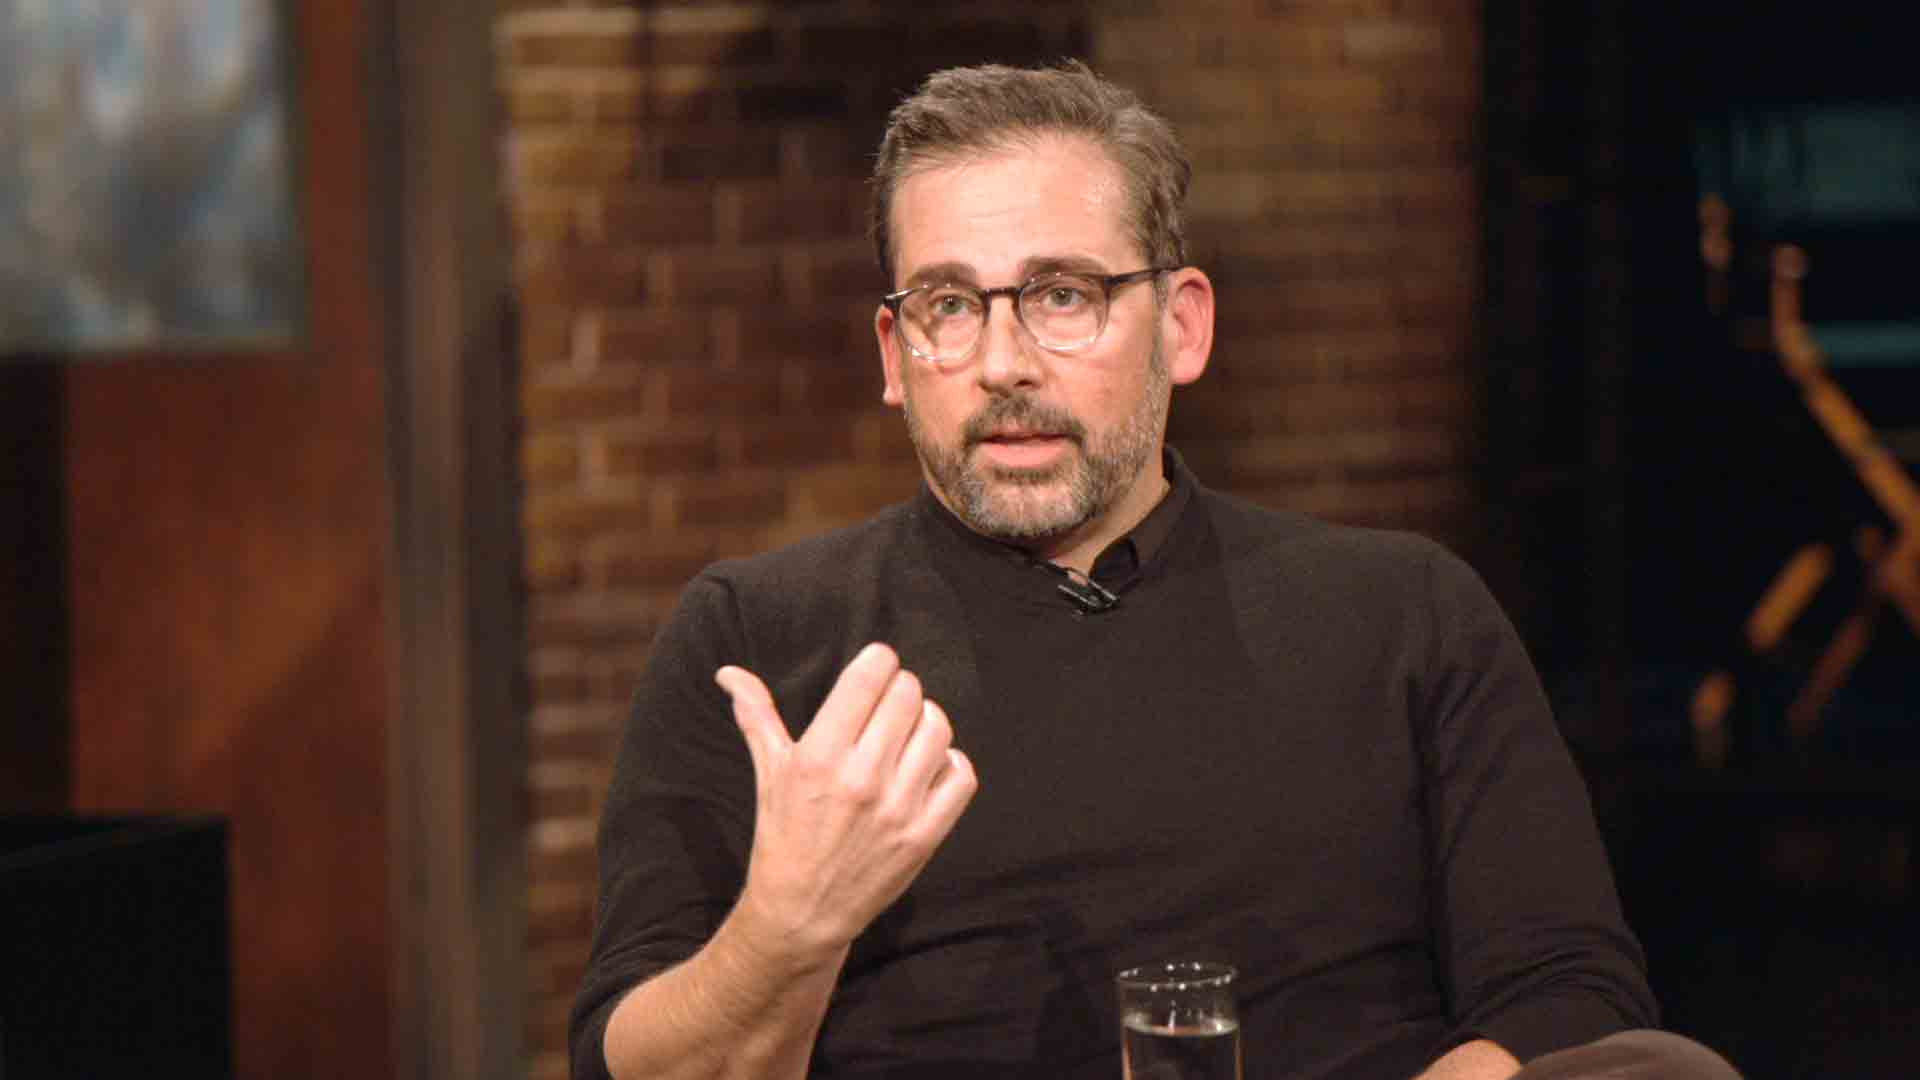 Watch Steve Carell on Always Playing Losers